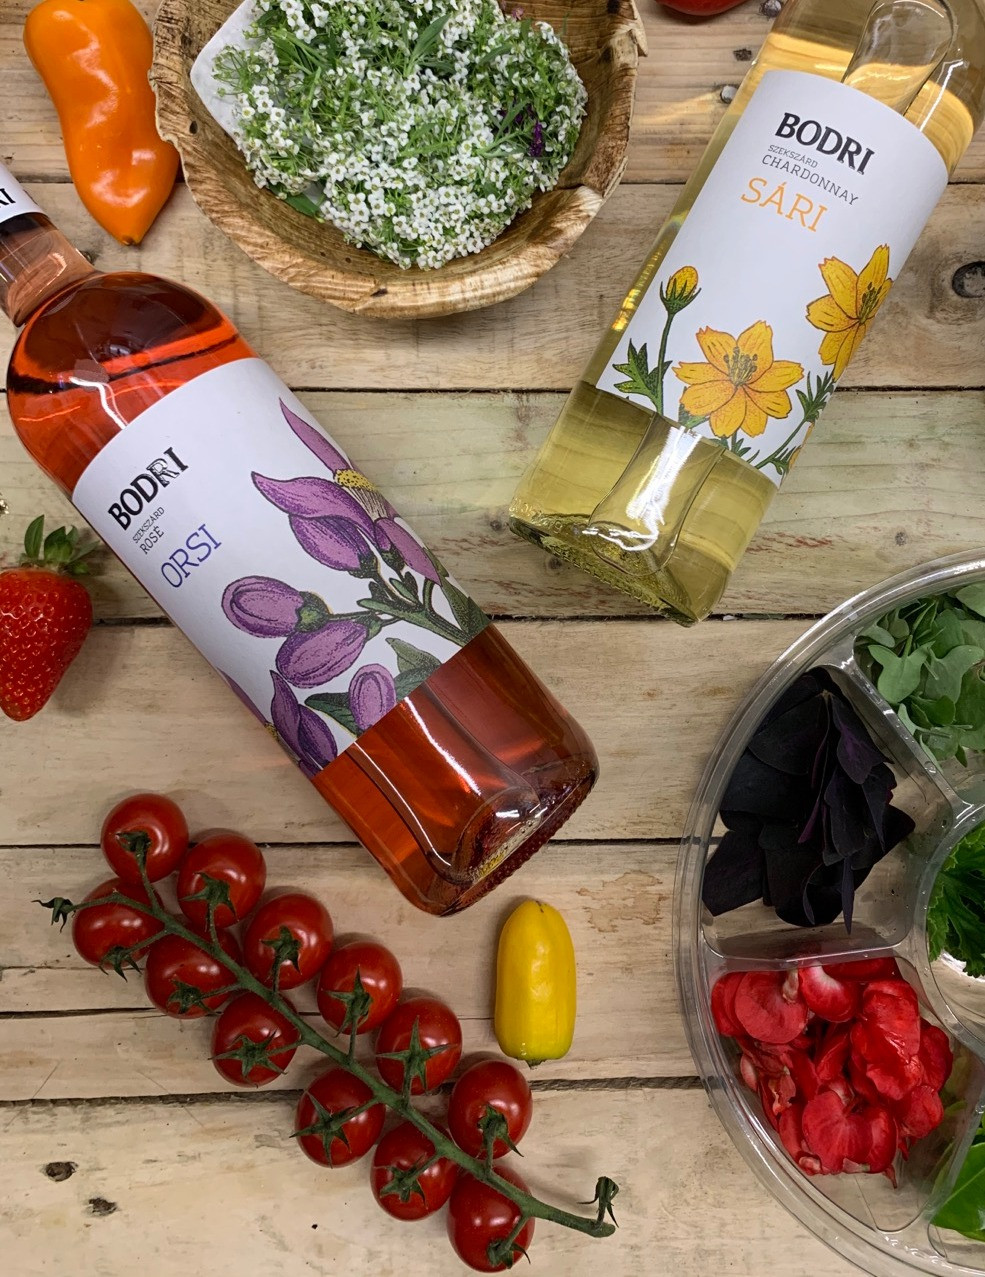 Bodri, Orsi rose - 2019  We can highly recommend this rounded blend rose wine for those who enjoy refreshing, fruity flavours. Its Mediterranean aroma makes it similar to the long gone 'Siller'.     Great companion to fish dishes and salads. Best served 8-10 C  Best served at 8-10 °C  750ml  12% ABV